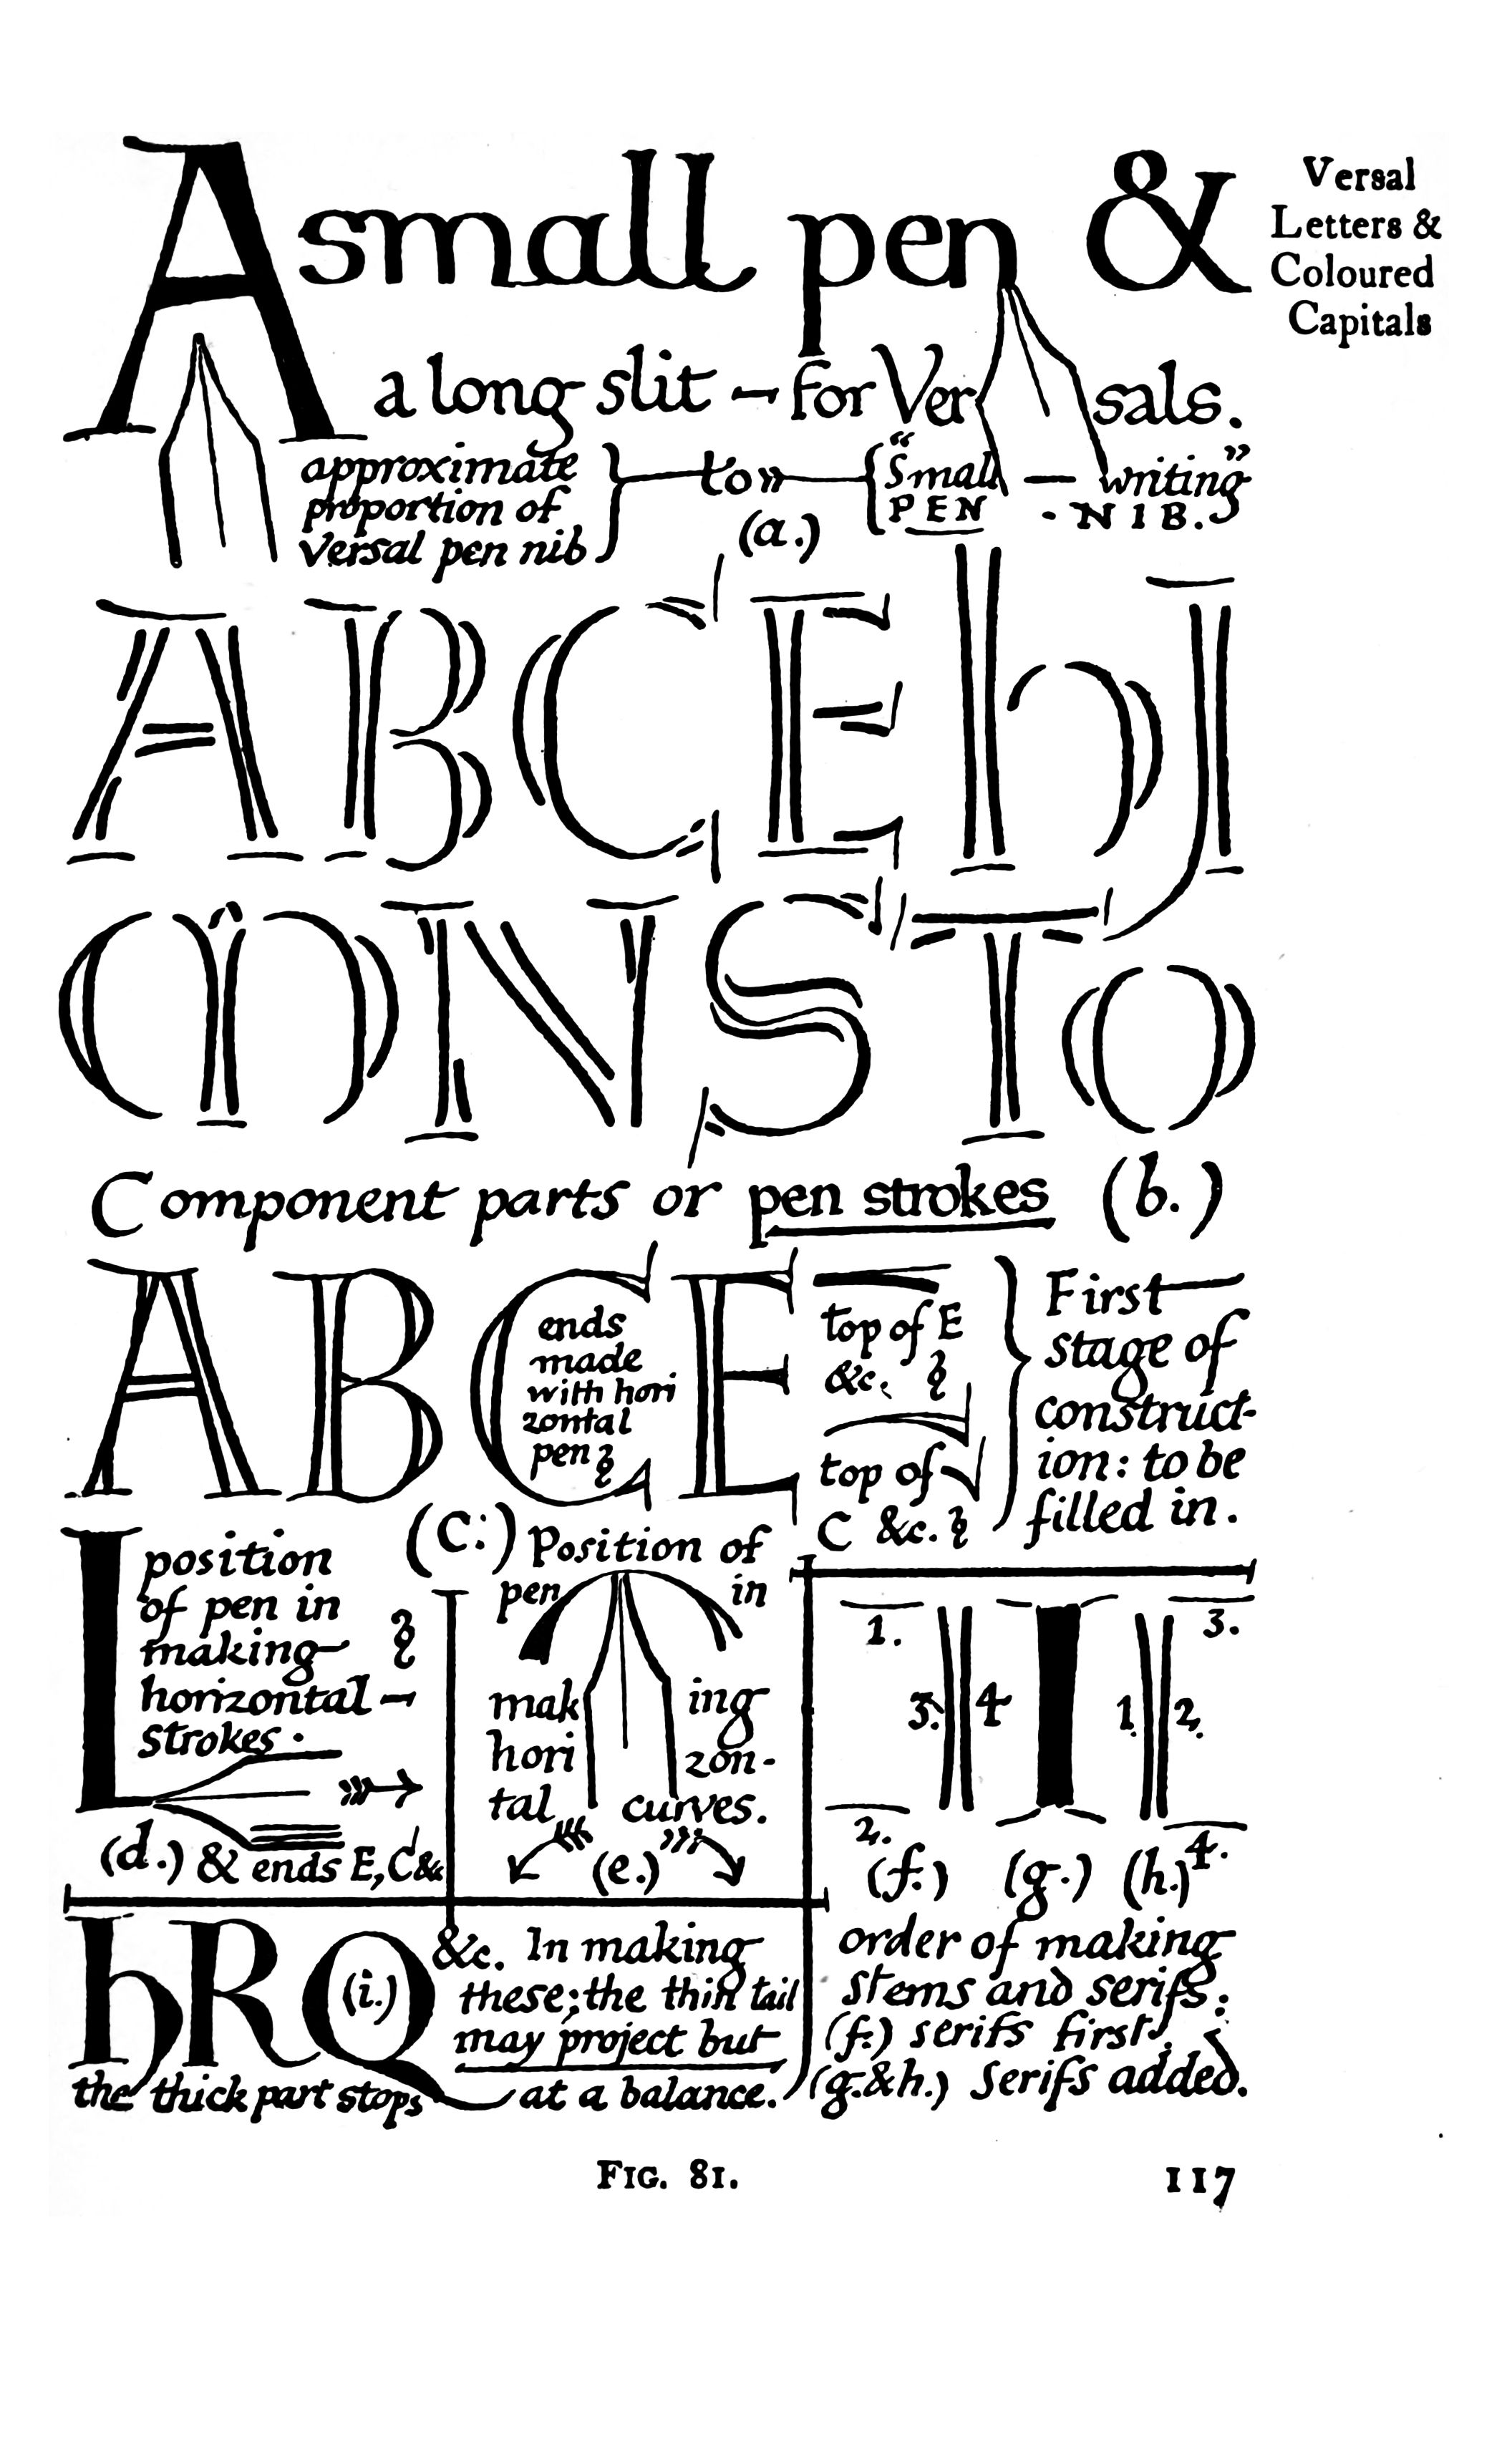 How to create Versal letters. (I believe this page is from